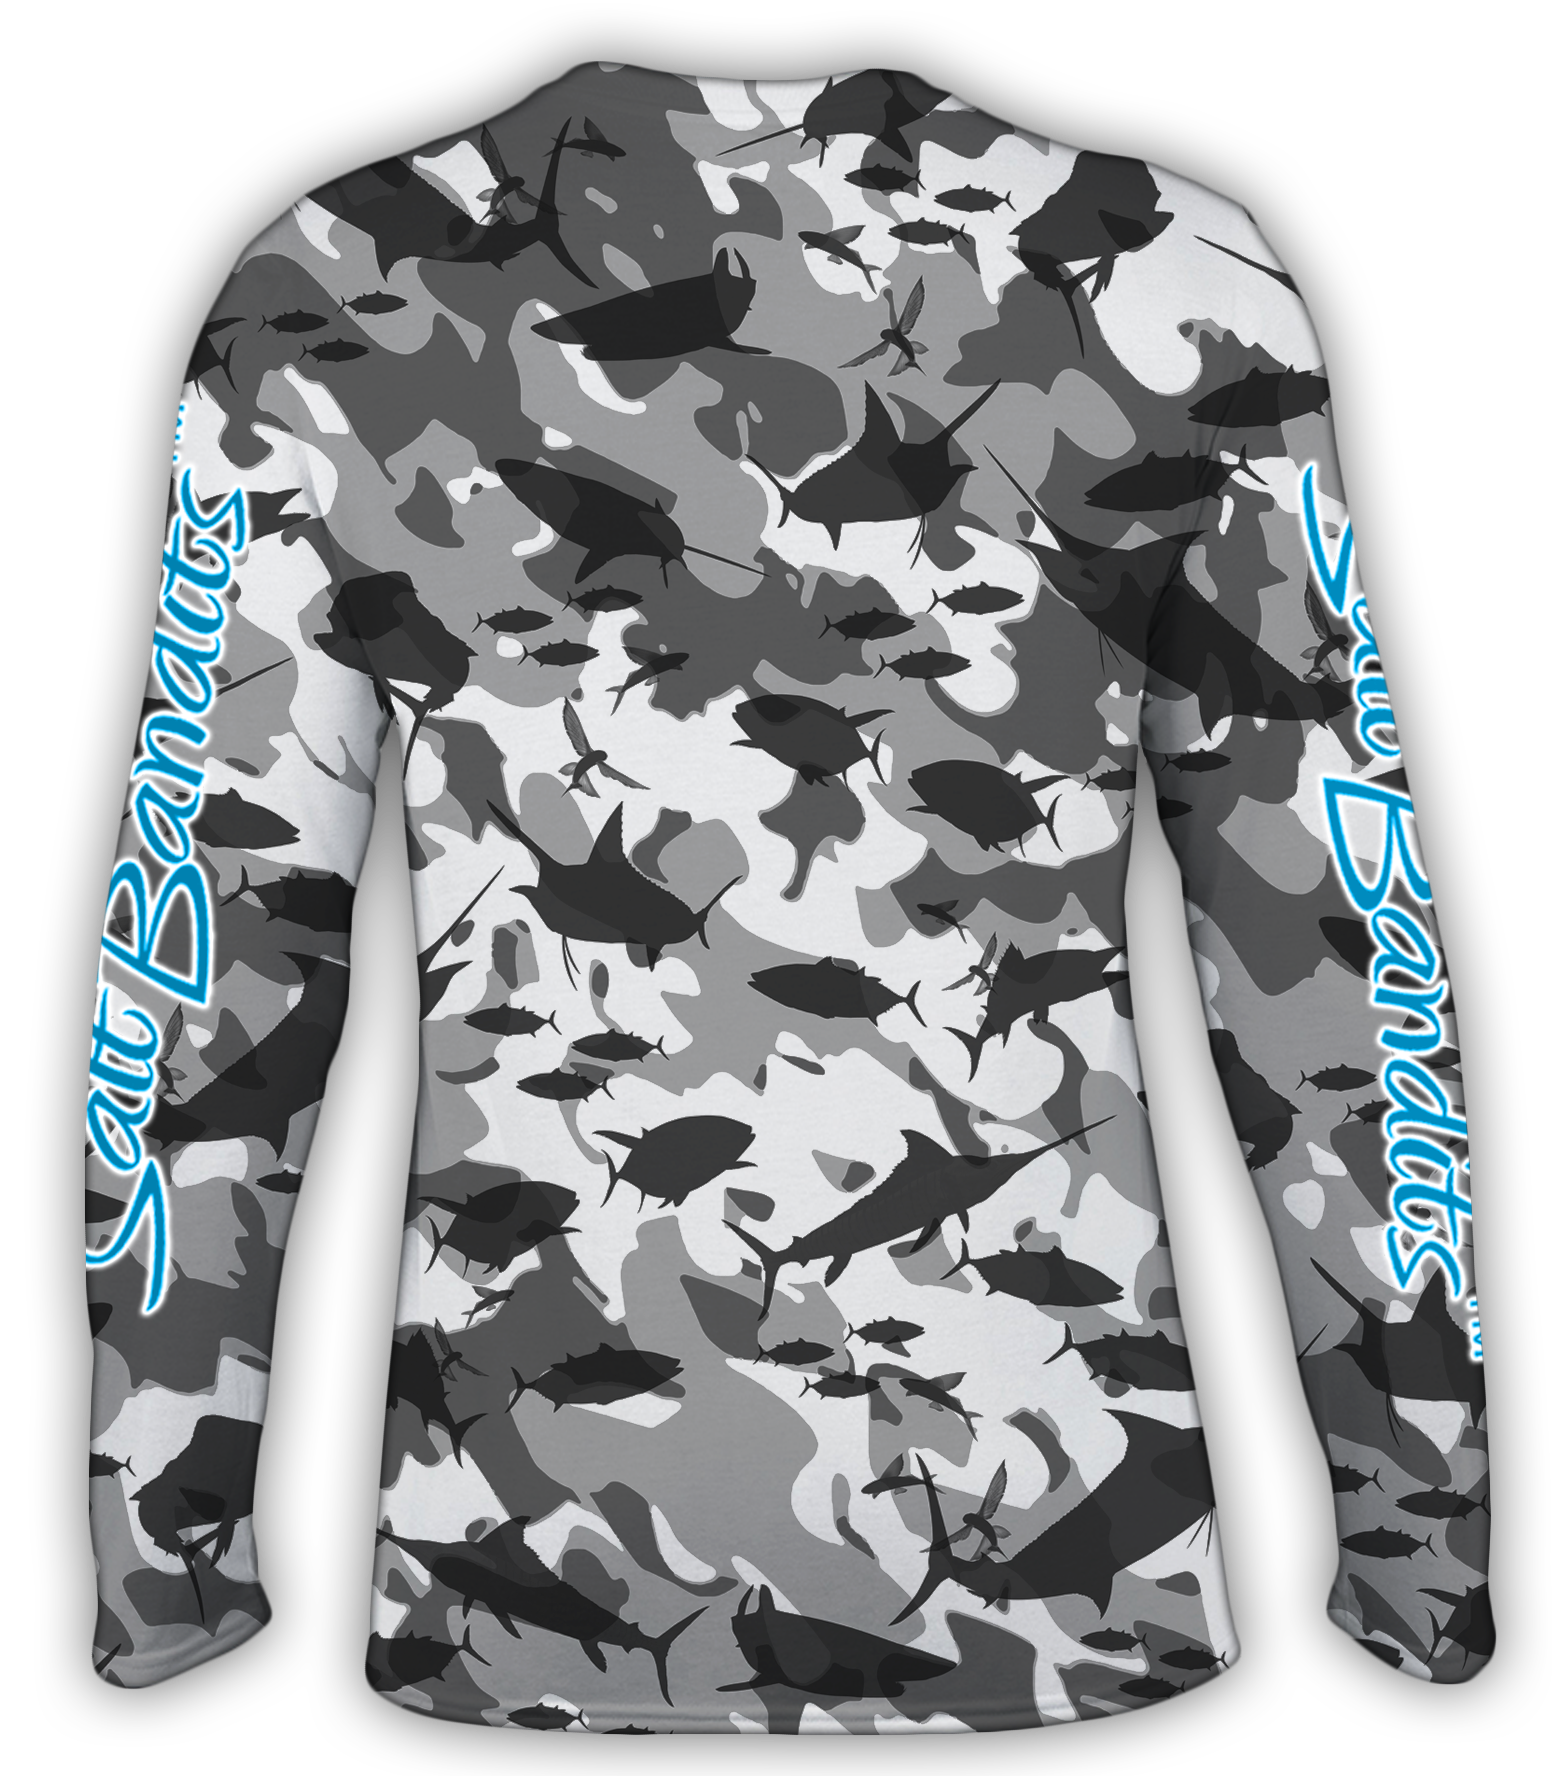 SaltBandits™ Grey Camouflage Performance Long Sleeve T-Shirt